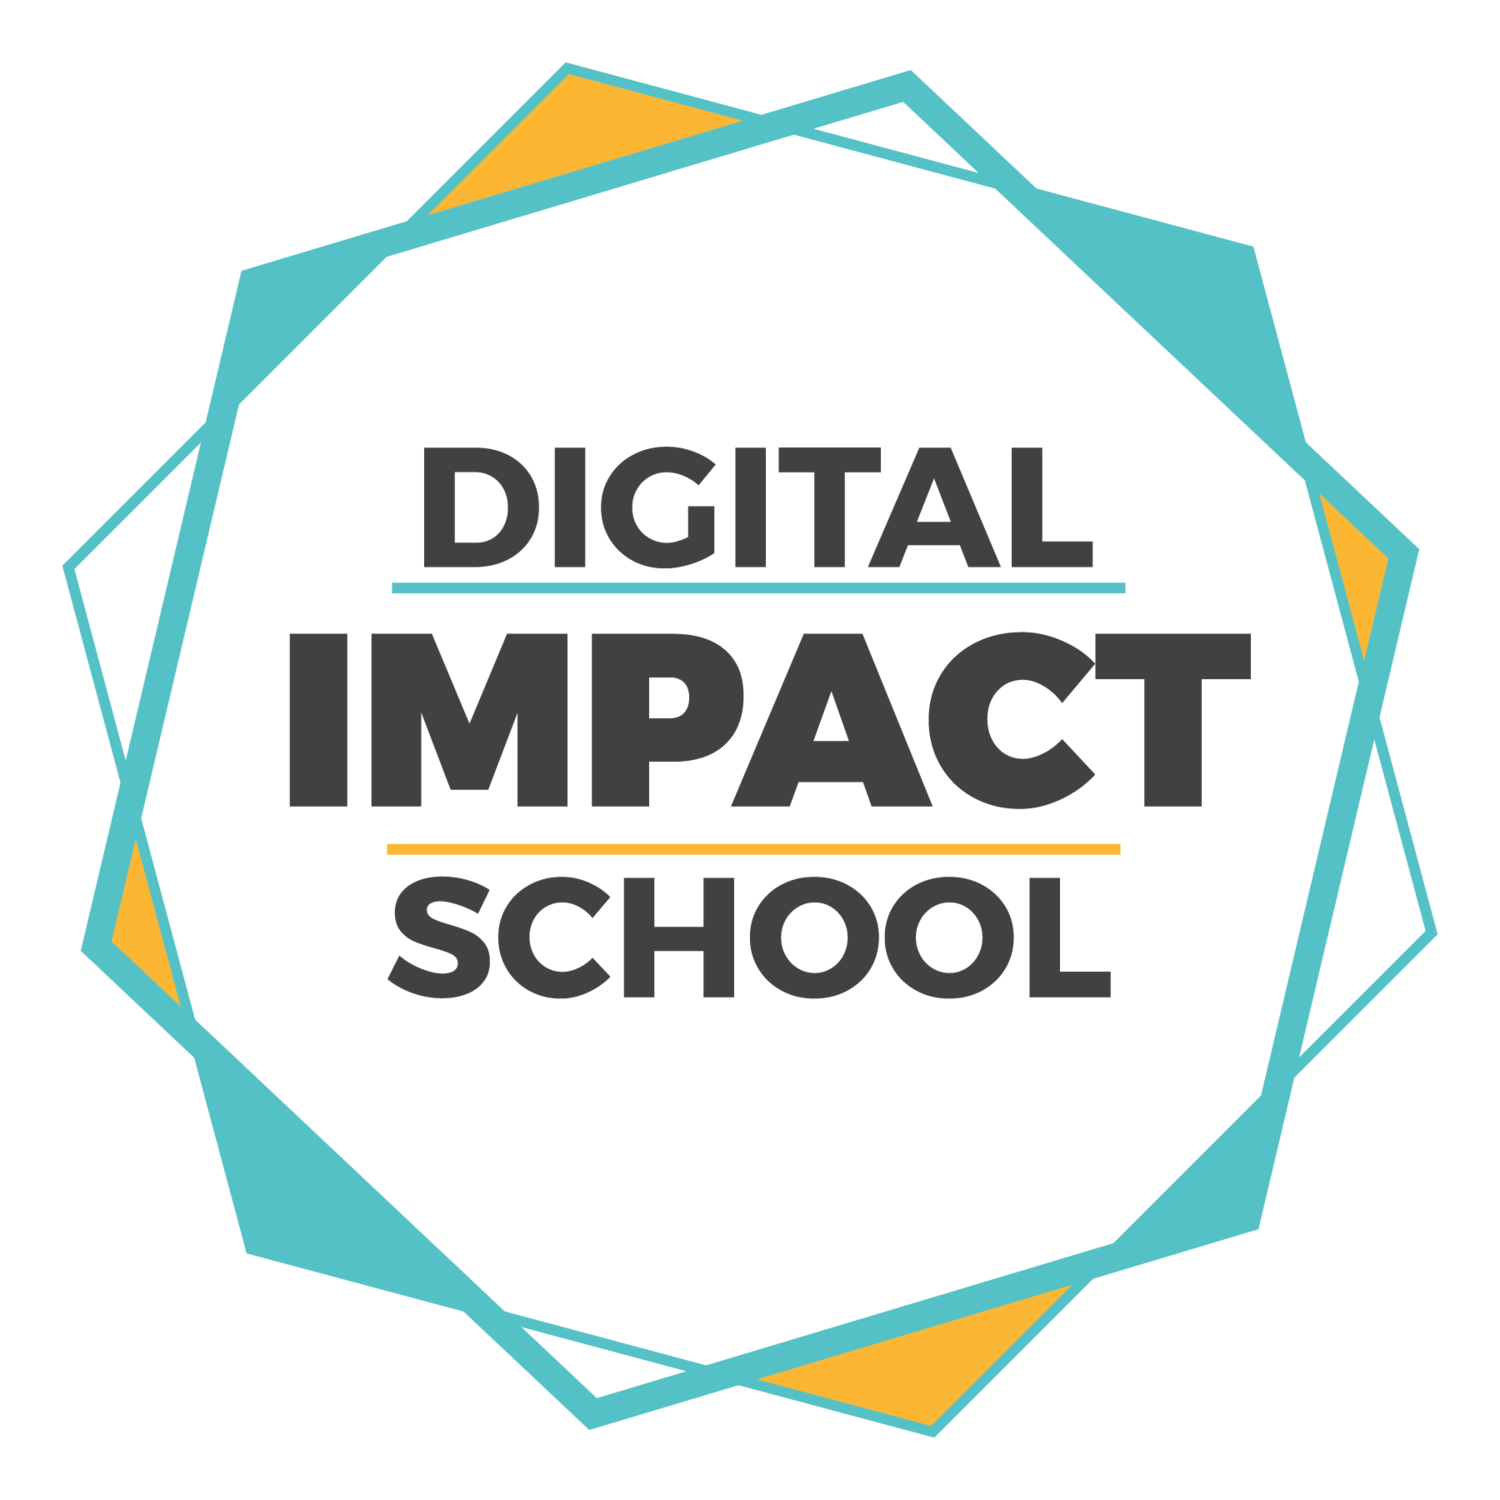 Digital Impact School